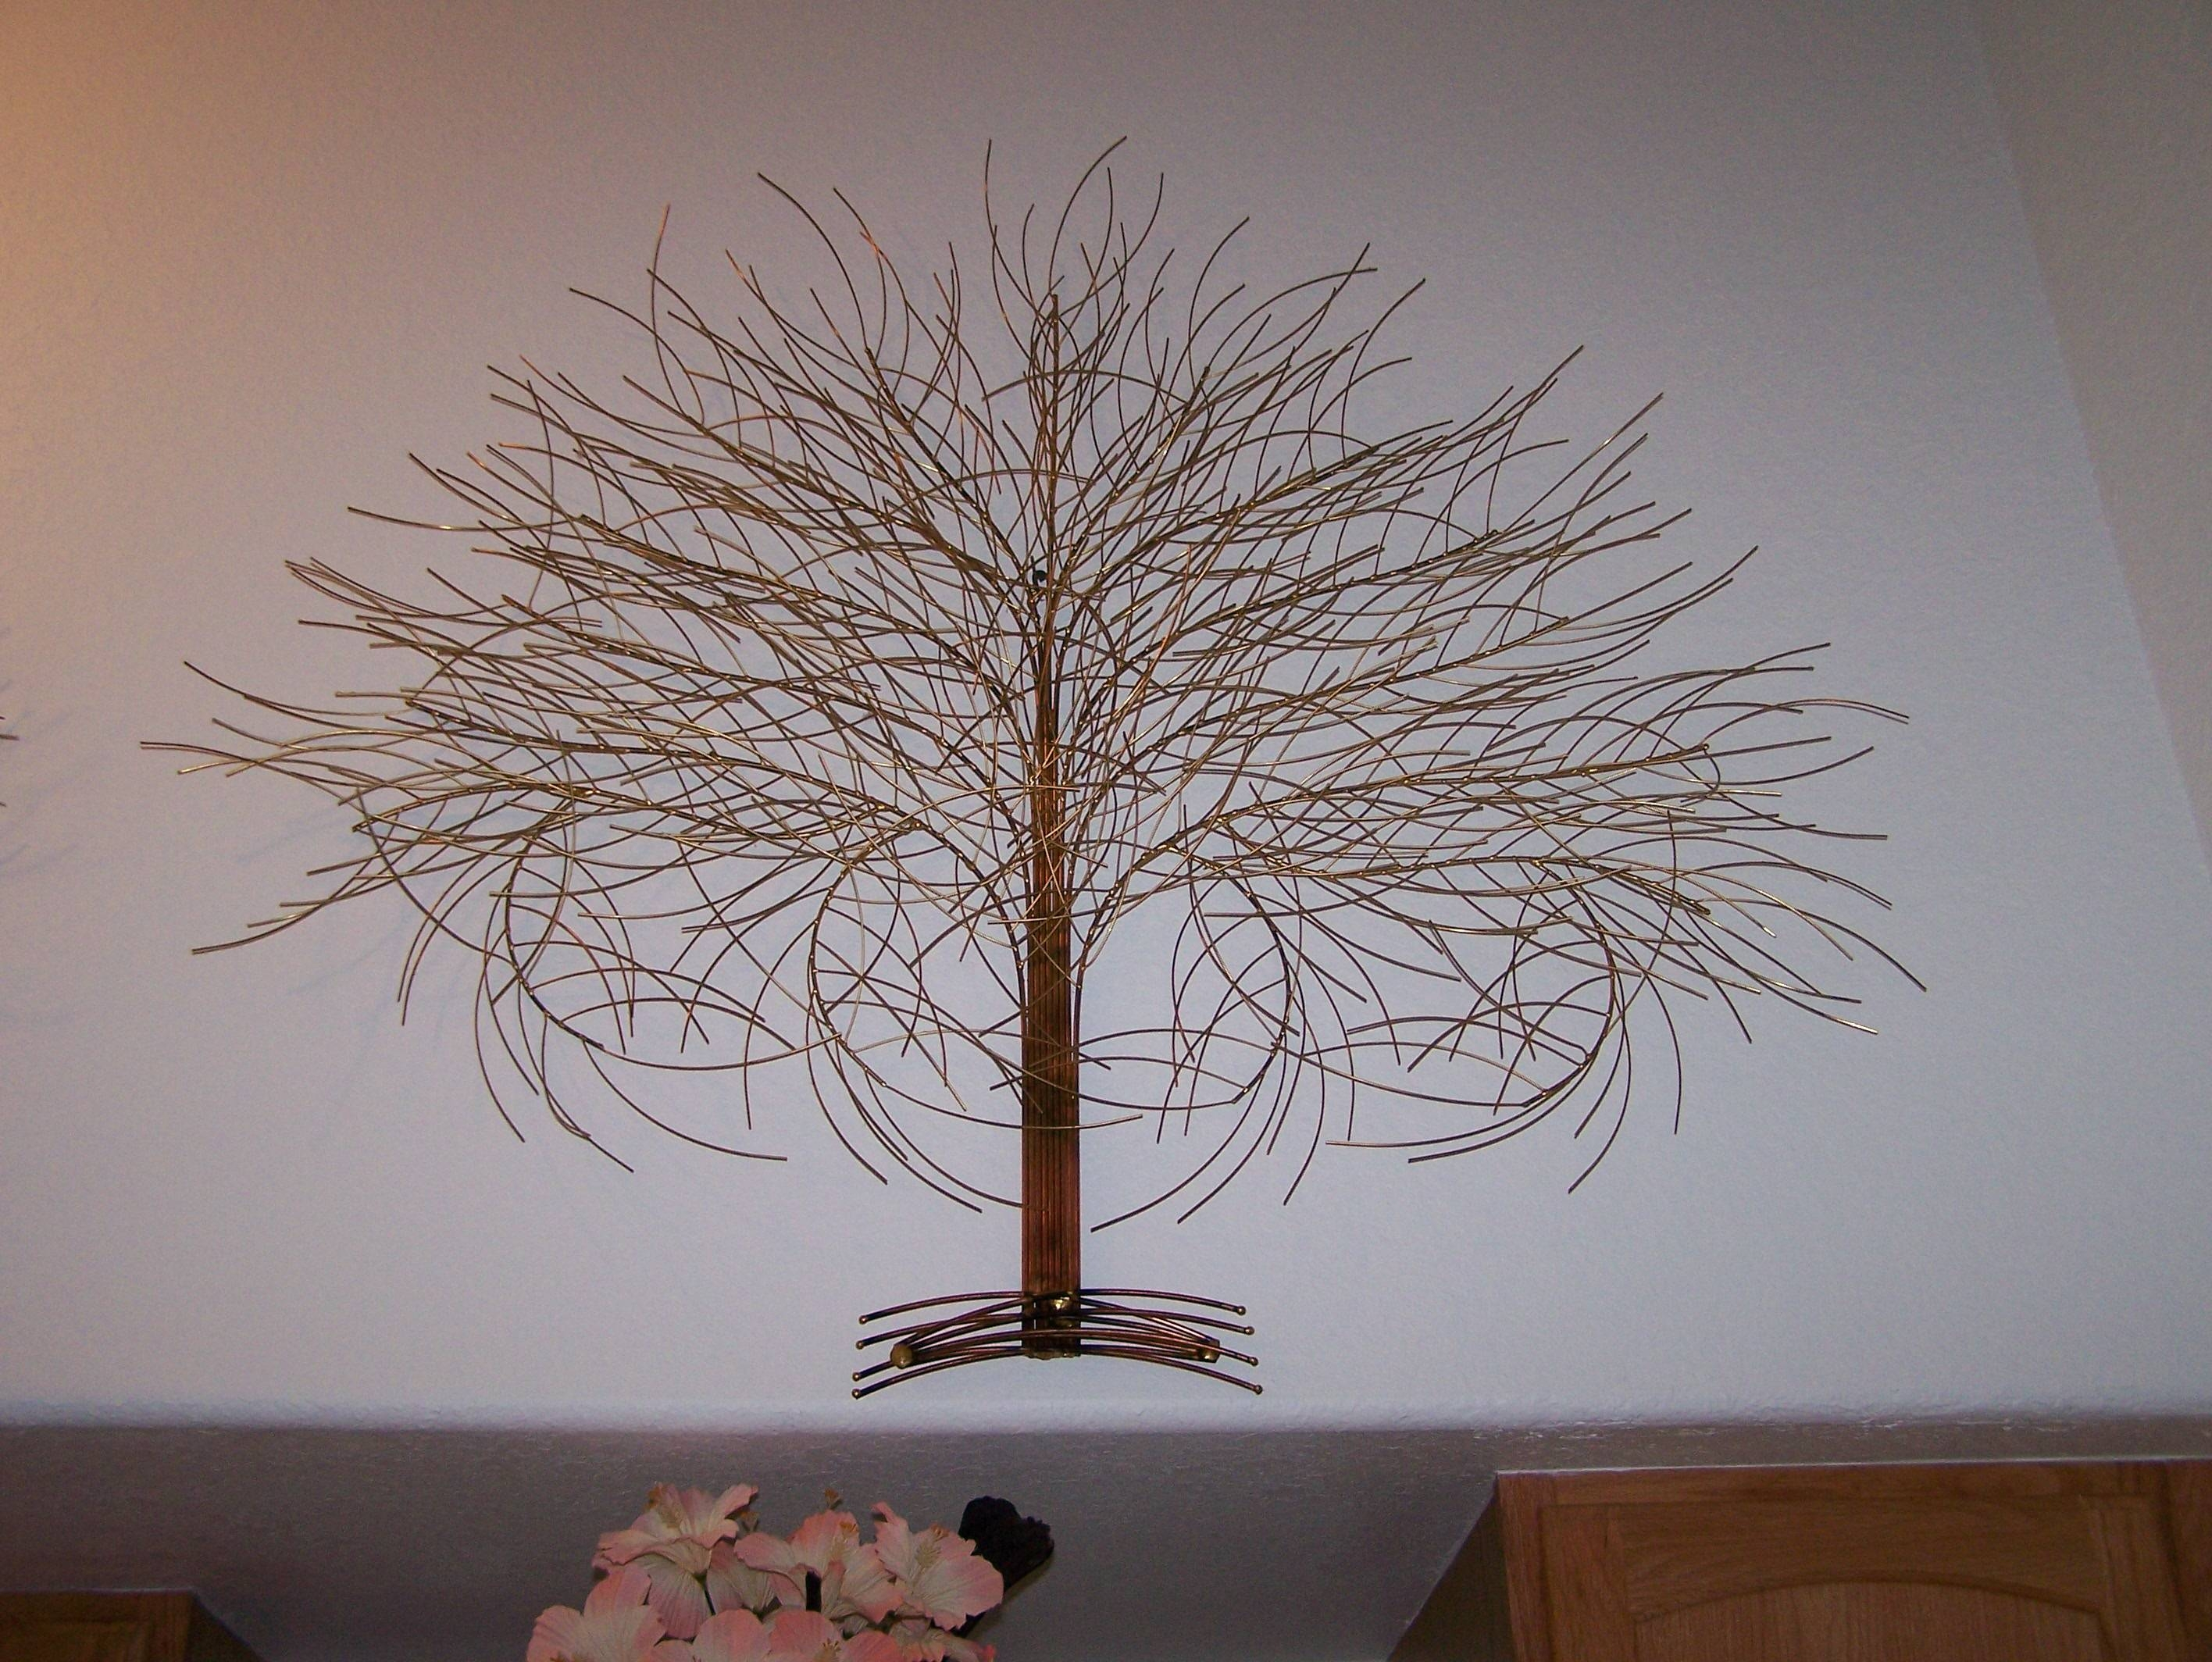 Tree Wall Art Sculpture | Wallartideas For Most Current Tree Wall Art Sculpture (View 16 of 20)